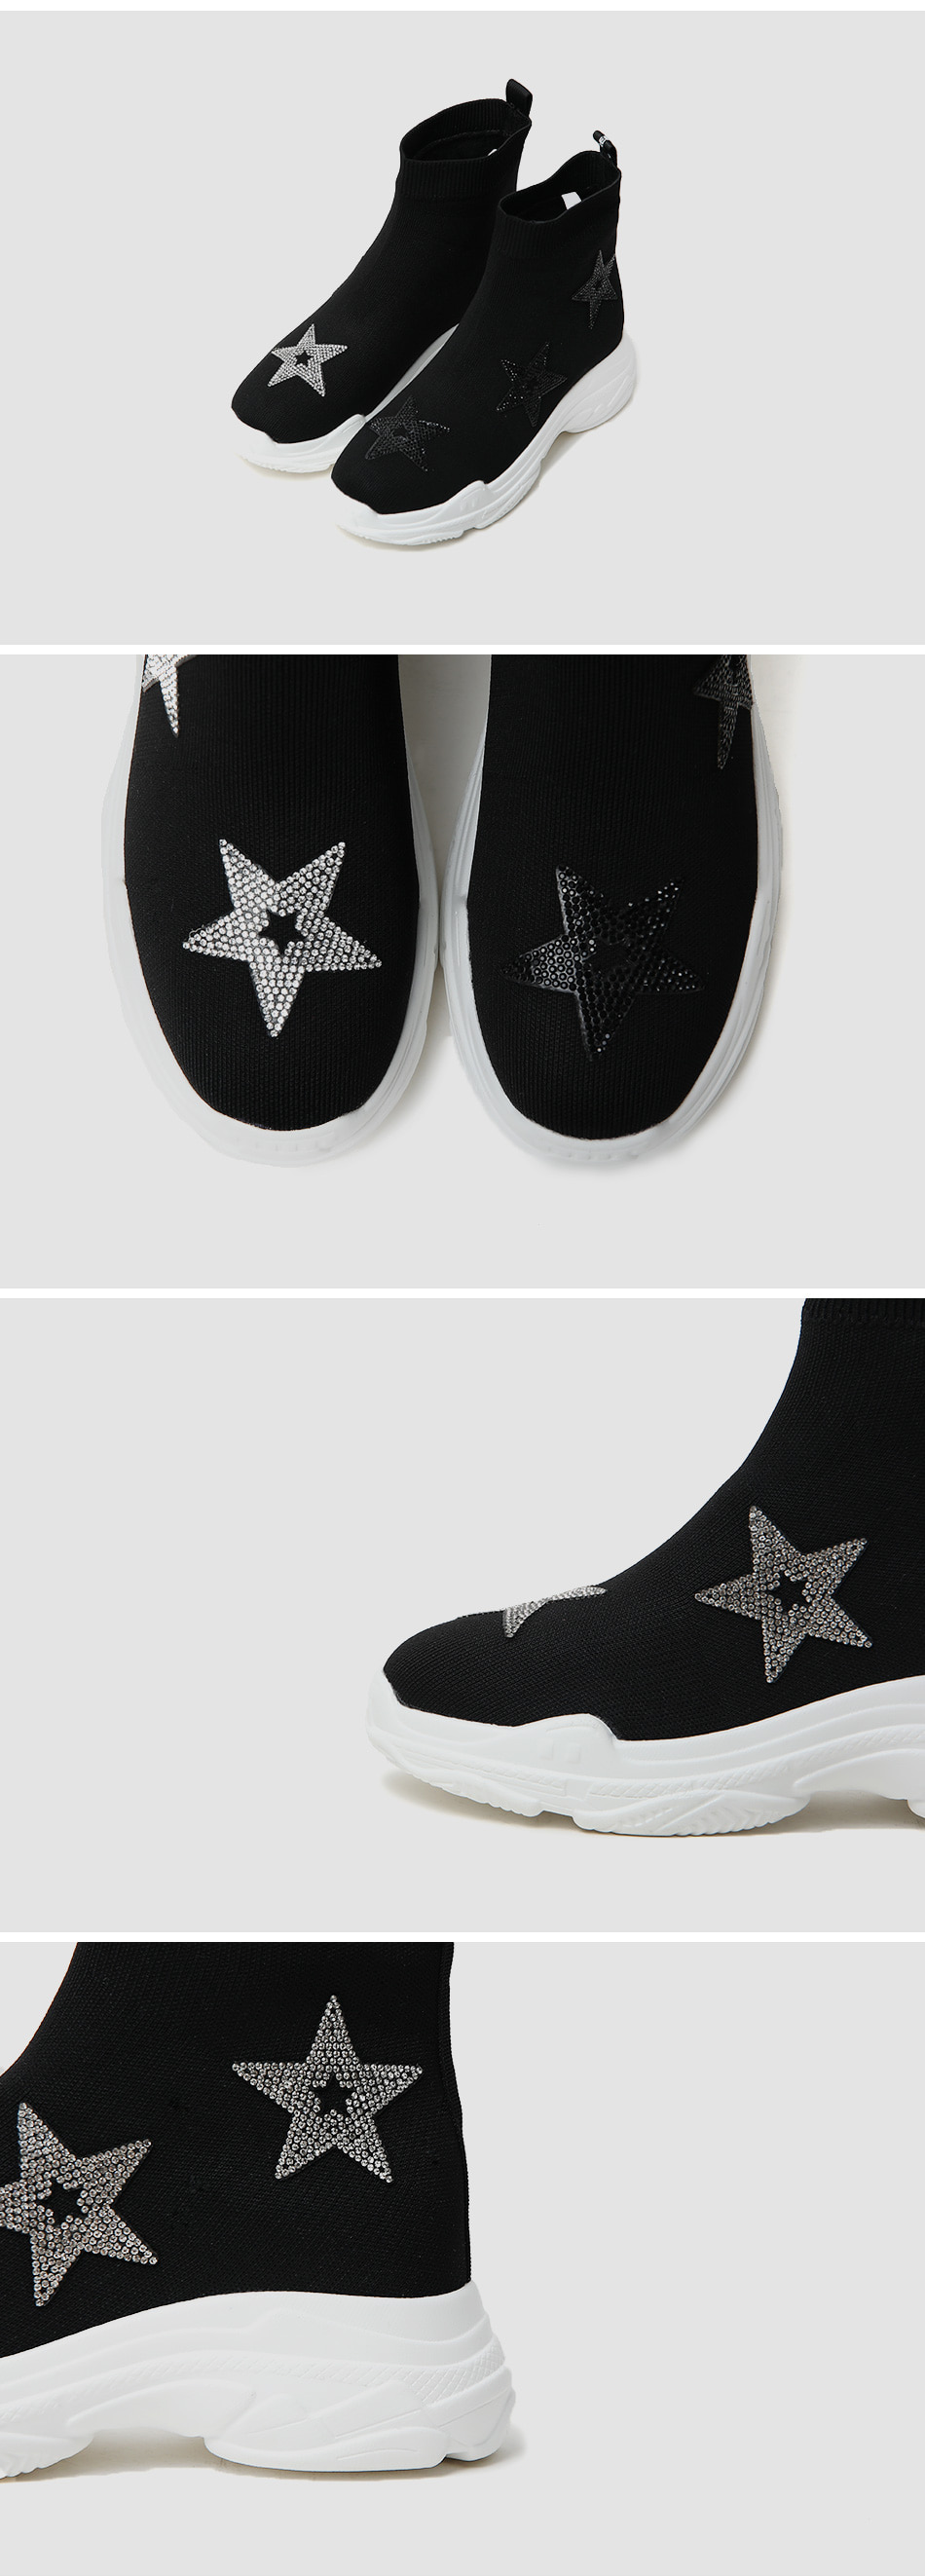 Constellation Sachs sneakers 4 cm